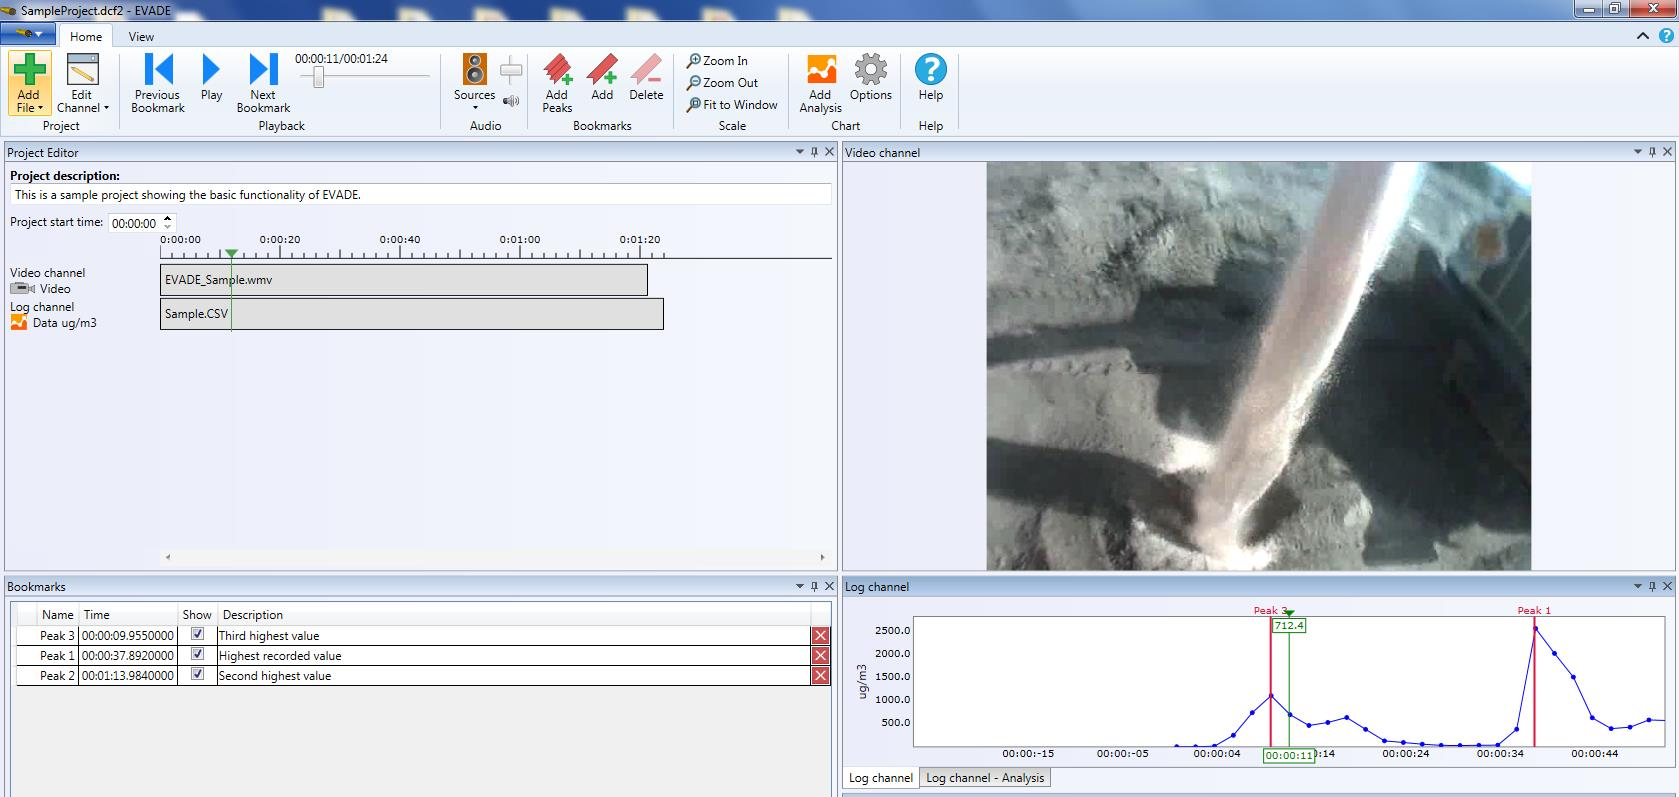 Enhanced Video Analysis of Dust Exposures (EVADE) Software Program